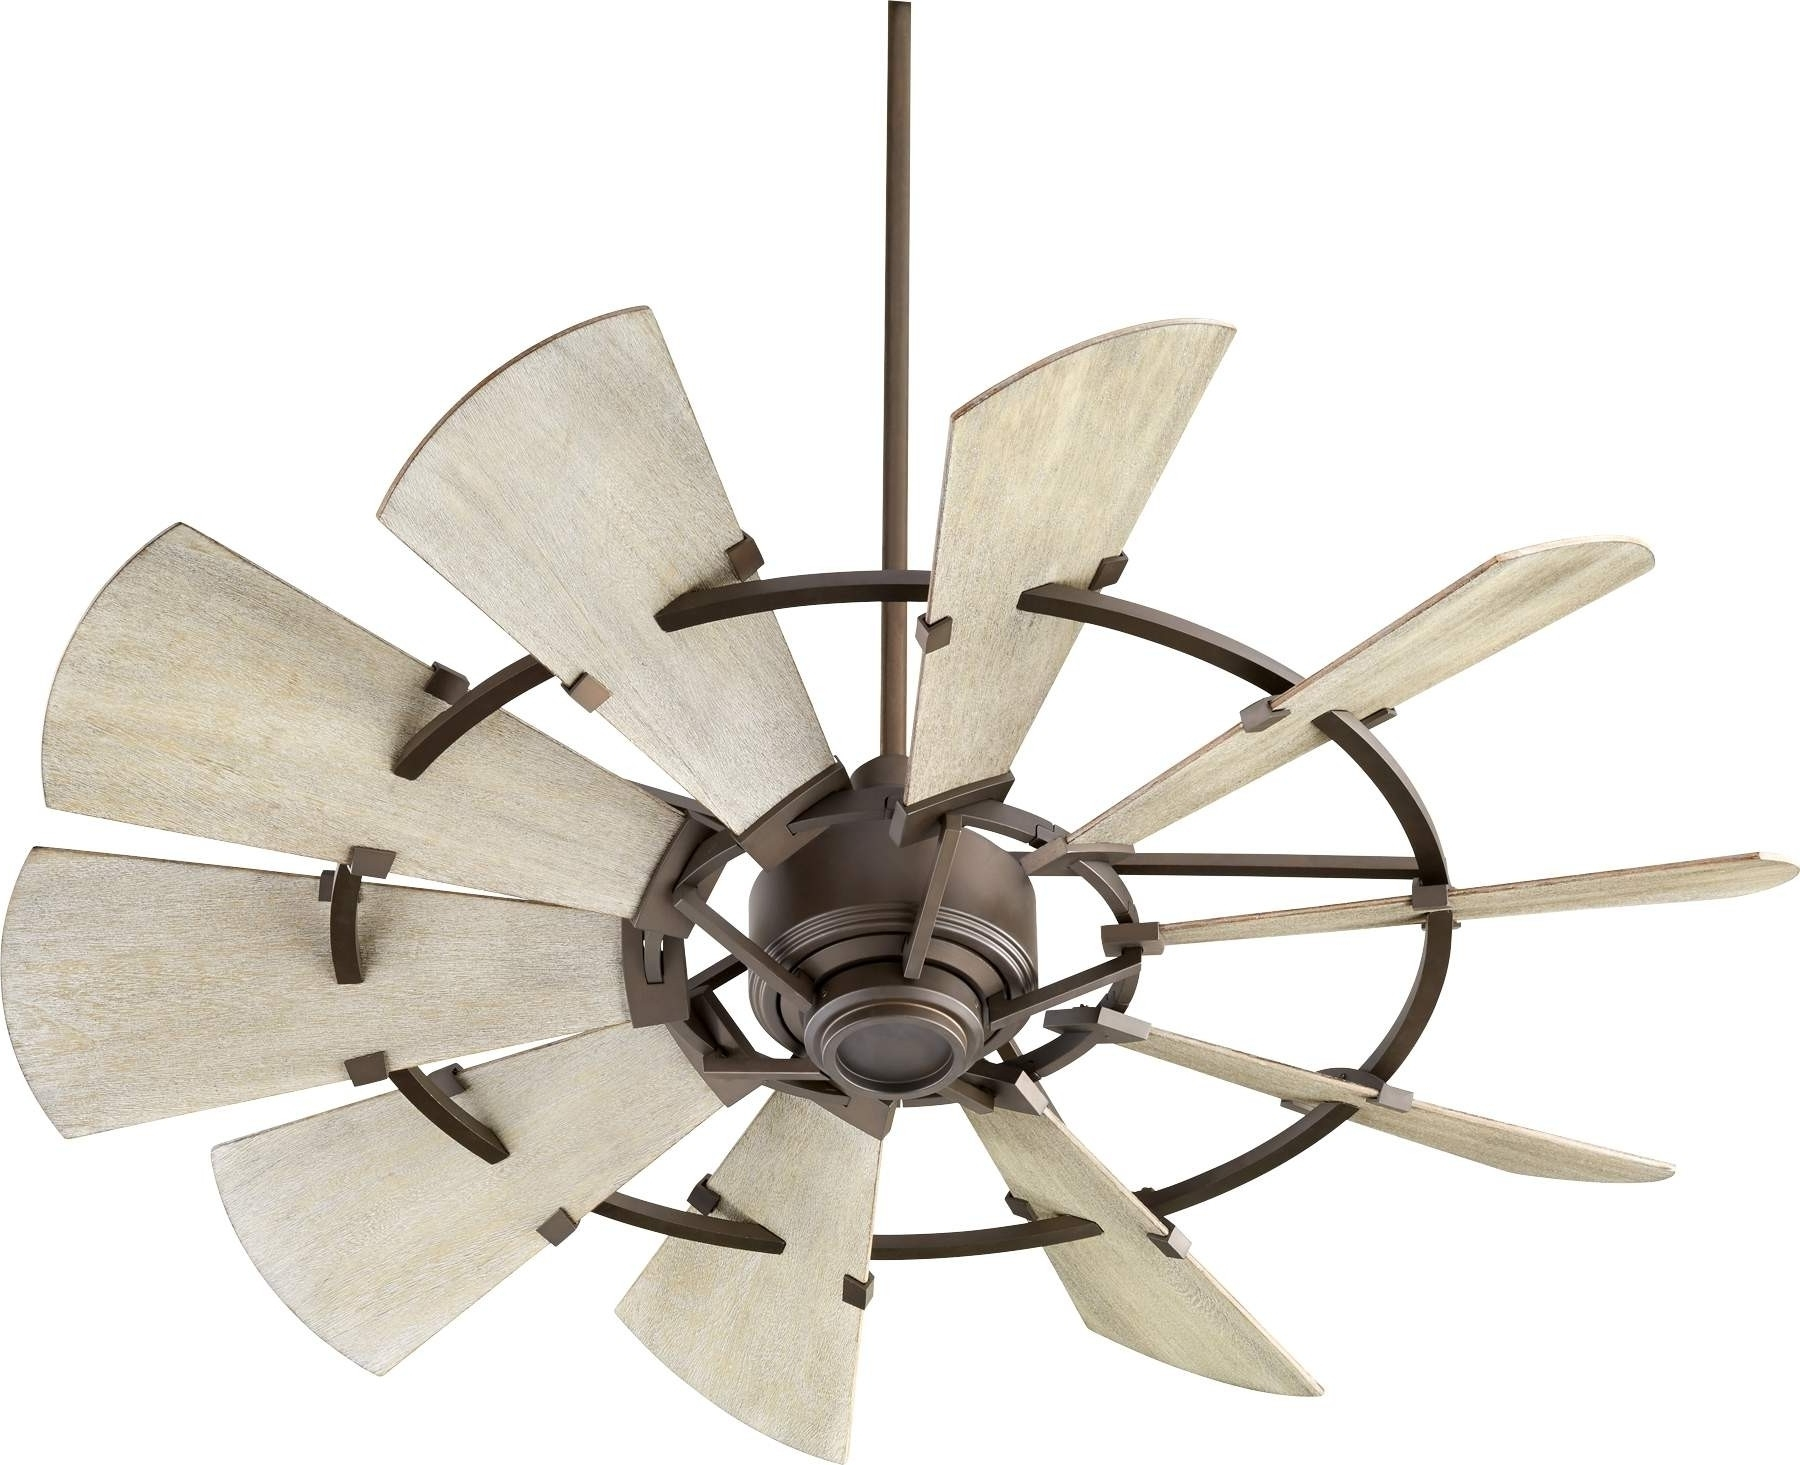 Well Known Quorum Outdoor Ceiling Fans Regarding Quorum Windmill Ceiling Fan Model 195210 86 In Oiled Bronze (View 7 of 20)